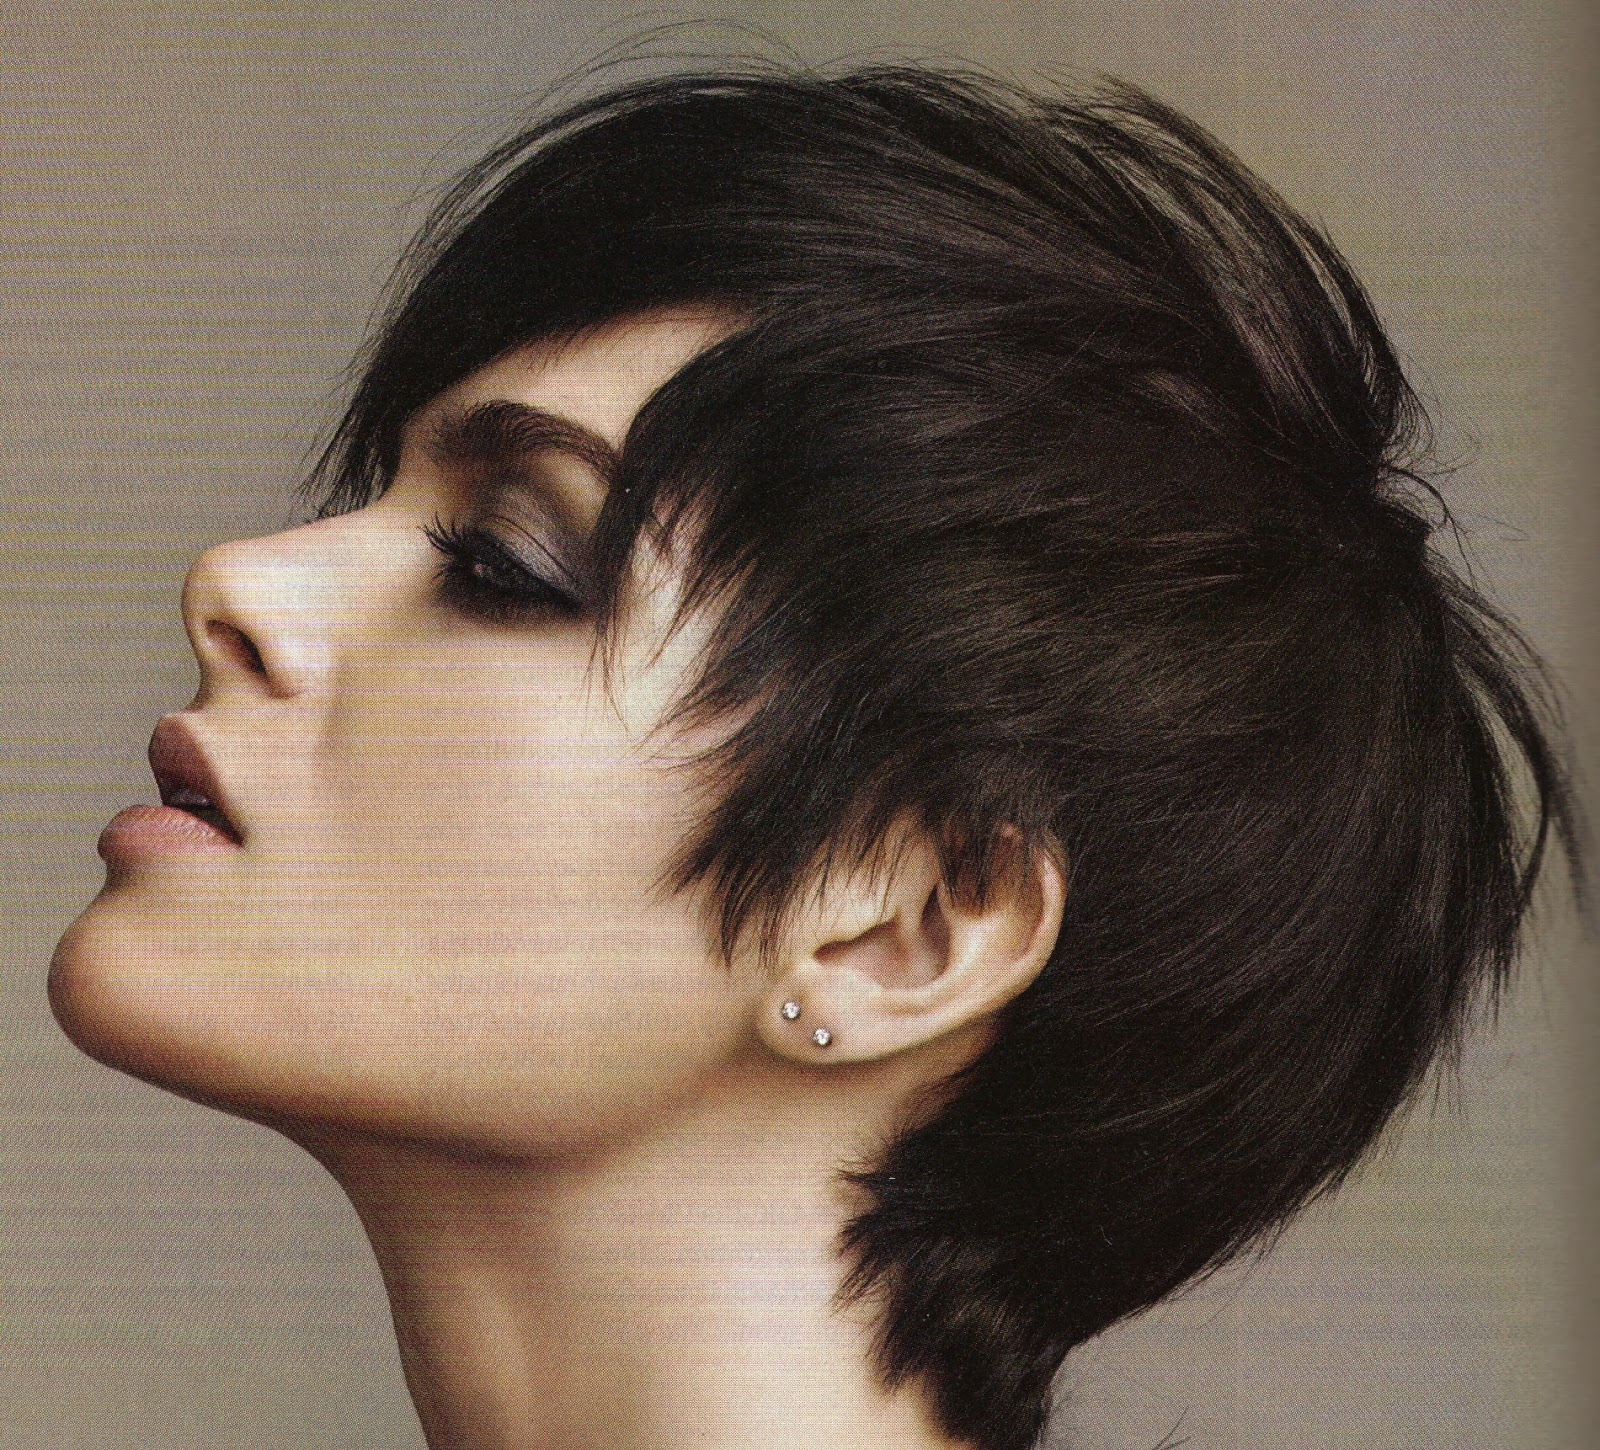 Trendy Hairstyles For Long Hair: The New Pixie